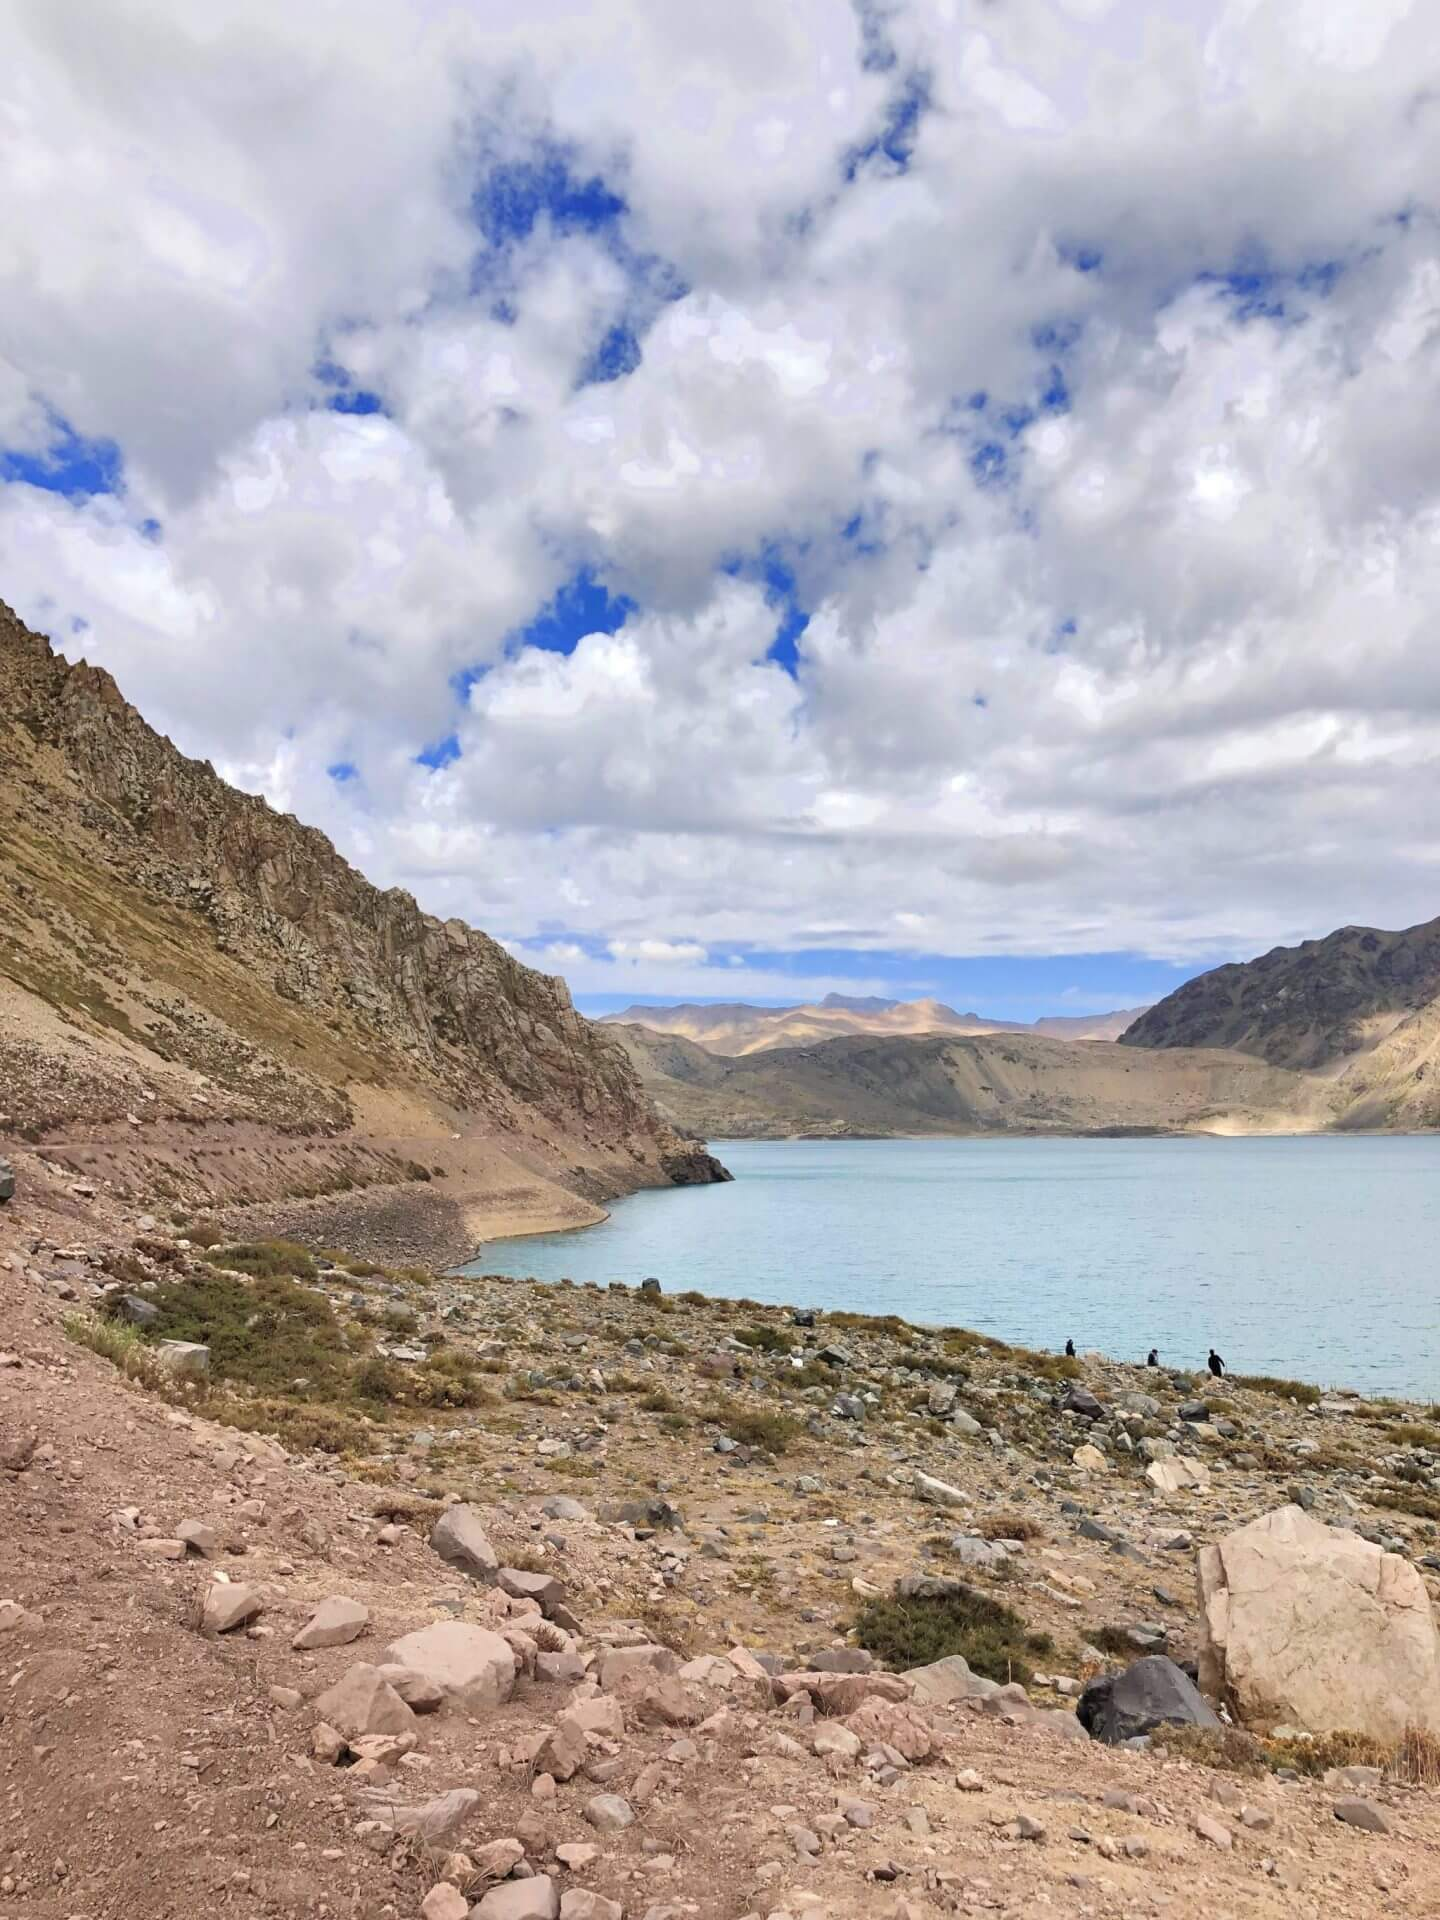 Day Trip to Embalse el Yeso with BellaBike